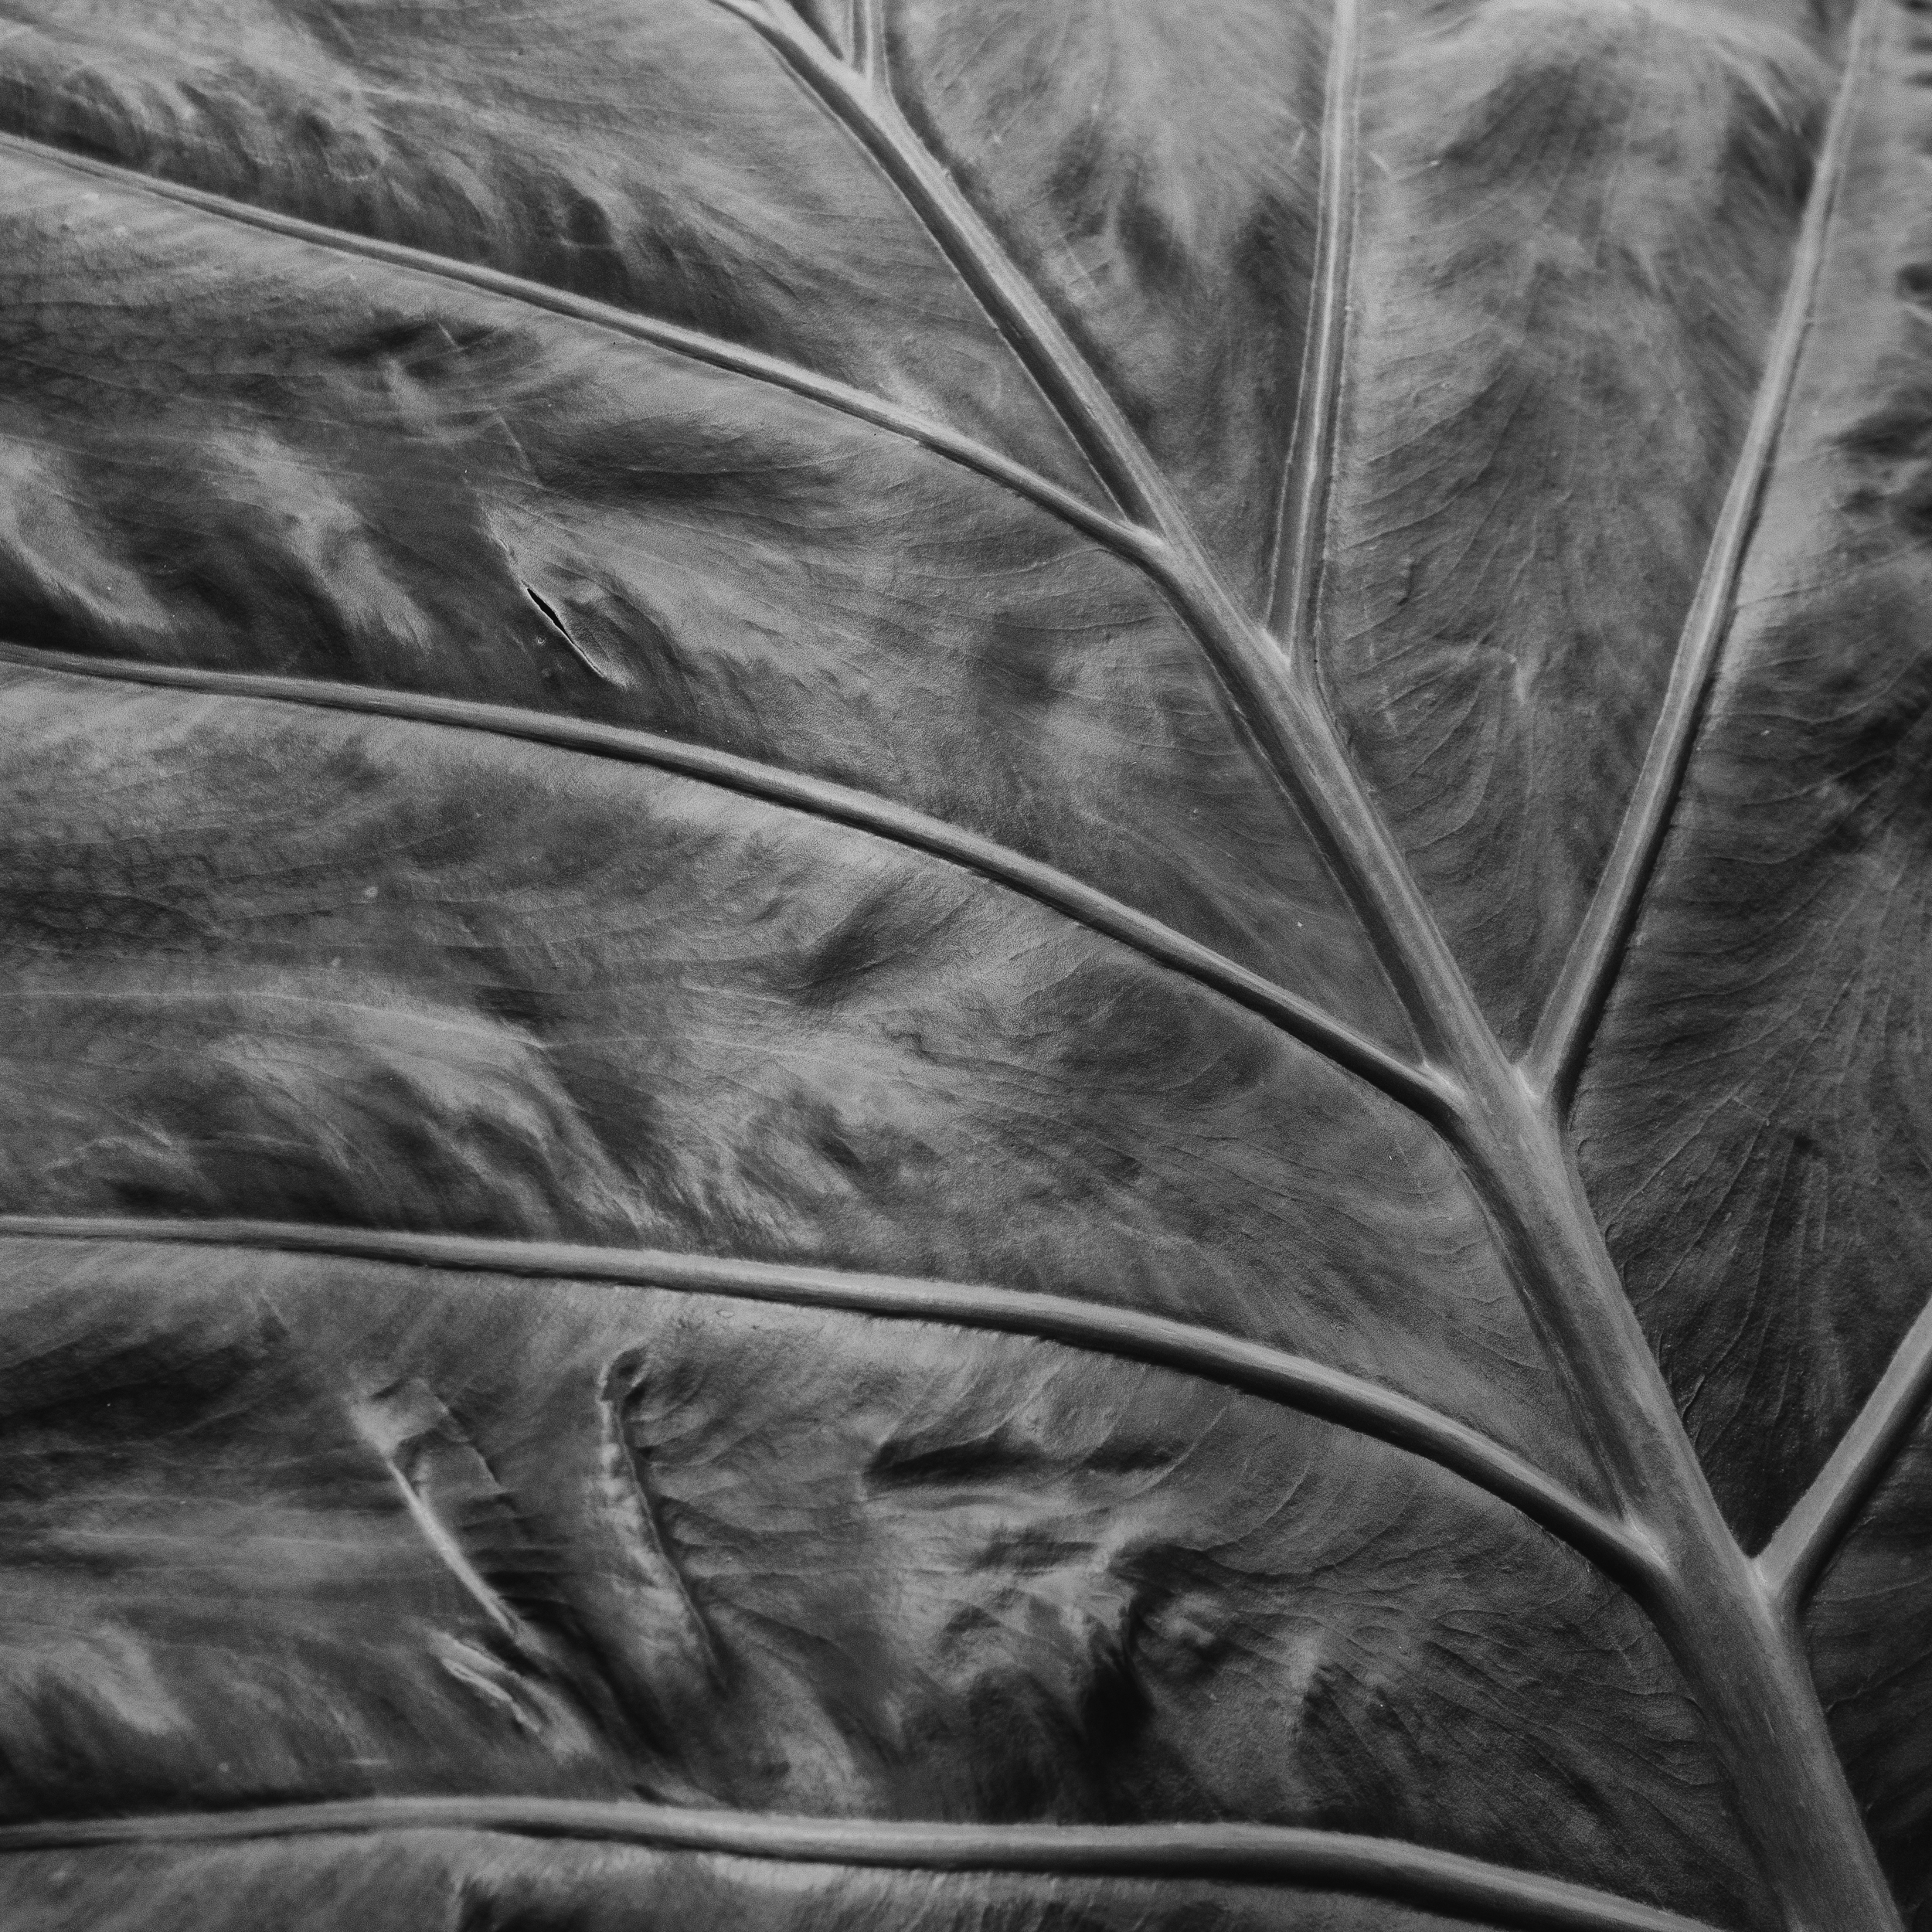 Leaf study.  Allentown Rose Garden.